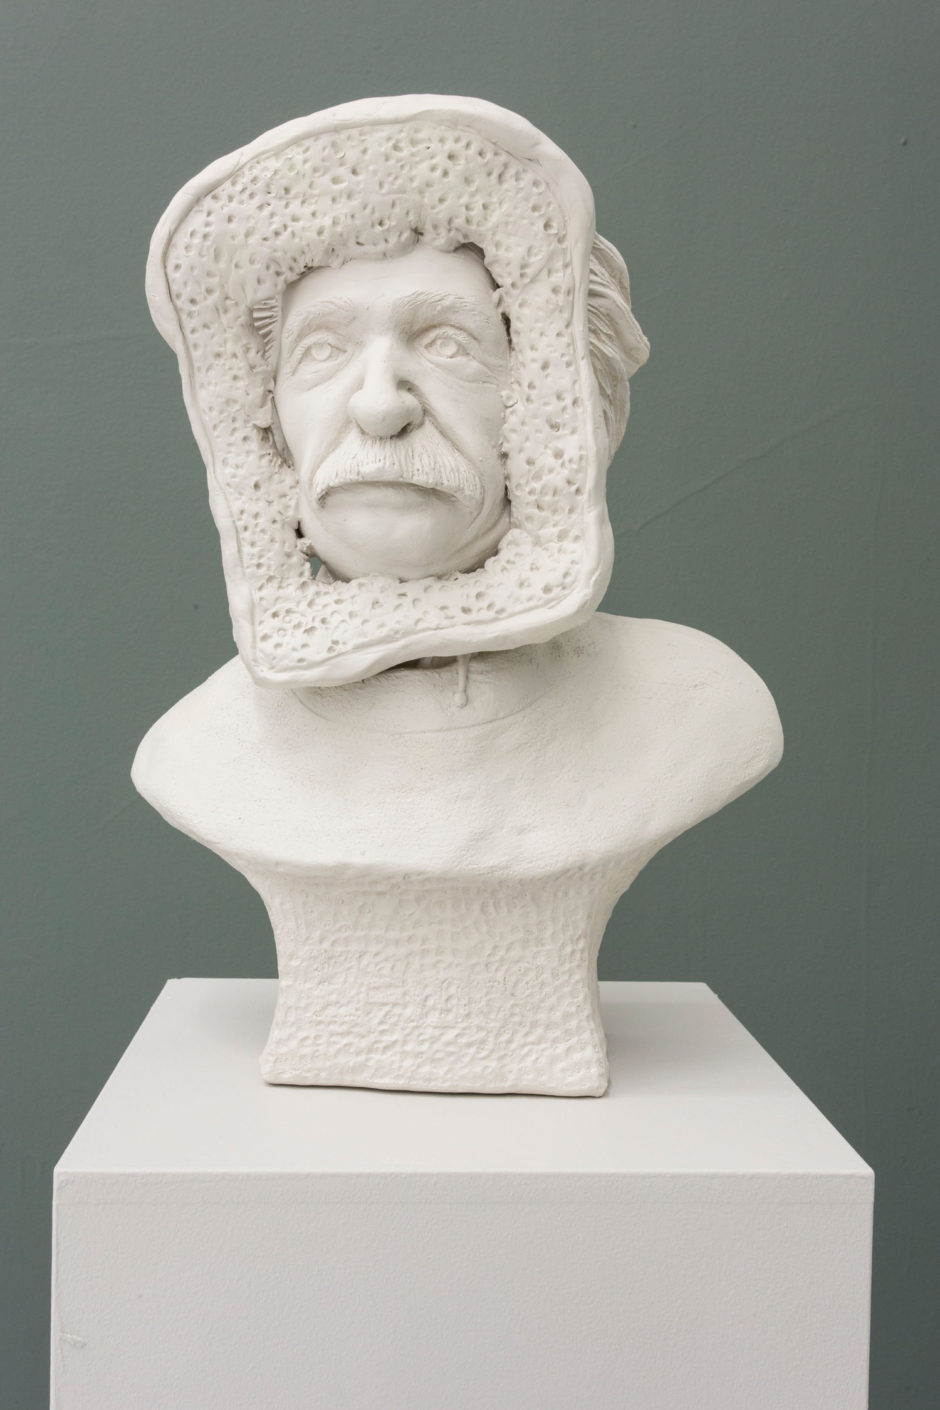 Theo Rosenblum, Chelsea Seltzer wall sculpture, clay sculpture, food sculpture, humor